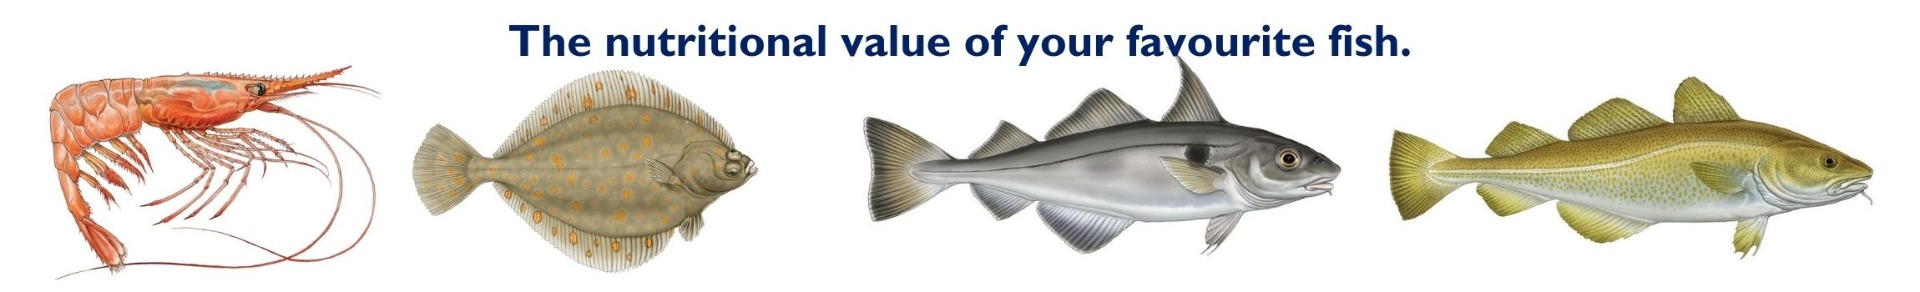 The_nutritional_value_of_your_favourite_fish.